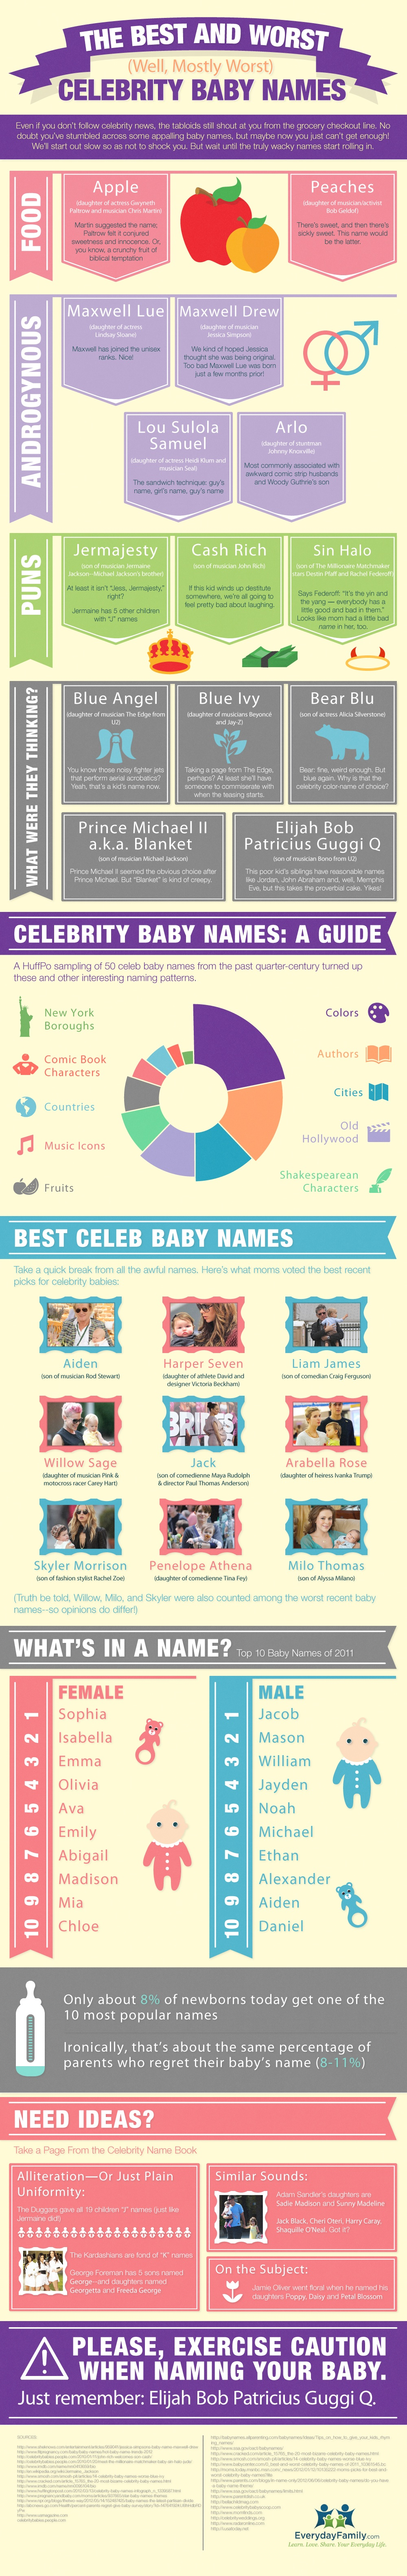 Baby Naming Choices of Celebs